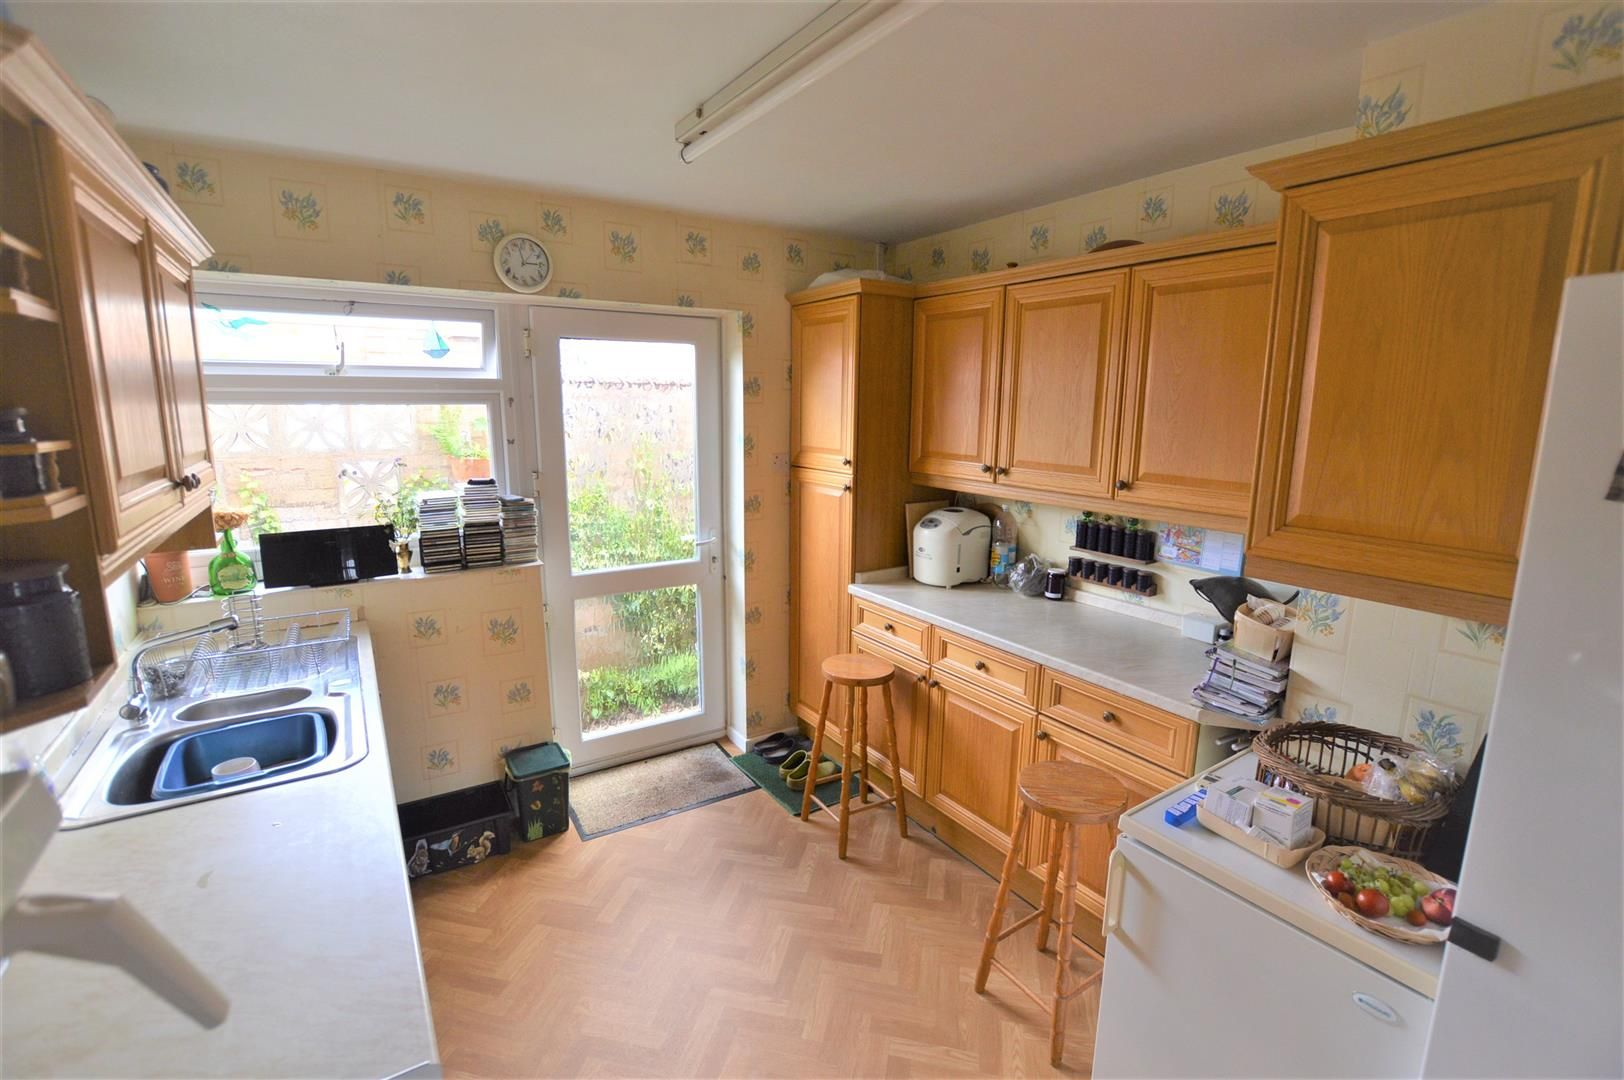 3 bed detached-bungalow for sale in Bodenham  - Property Image 7